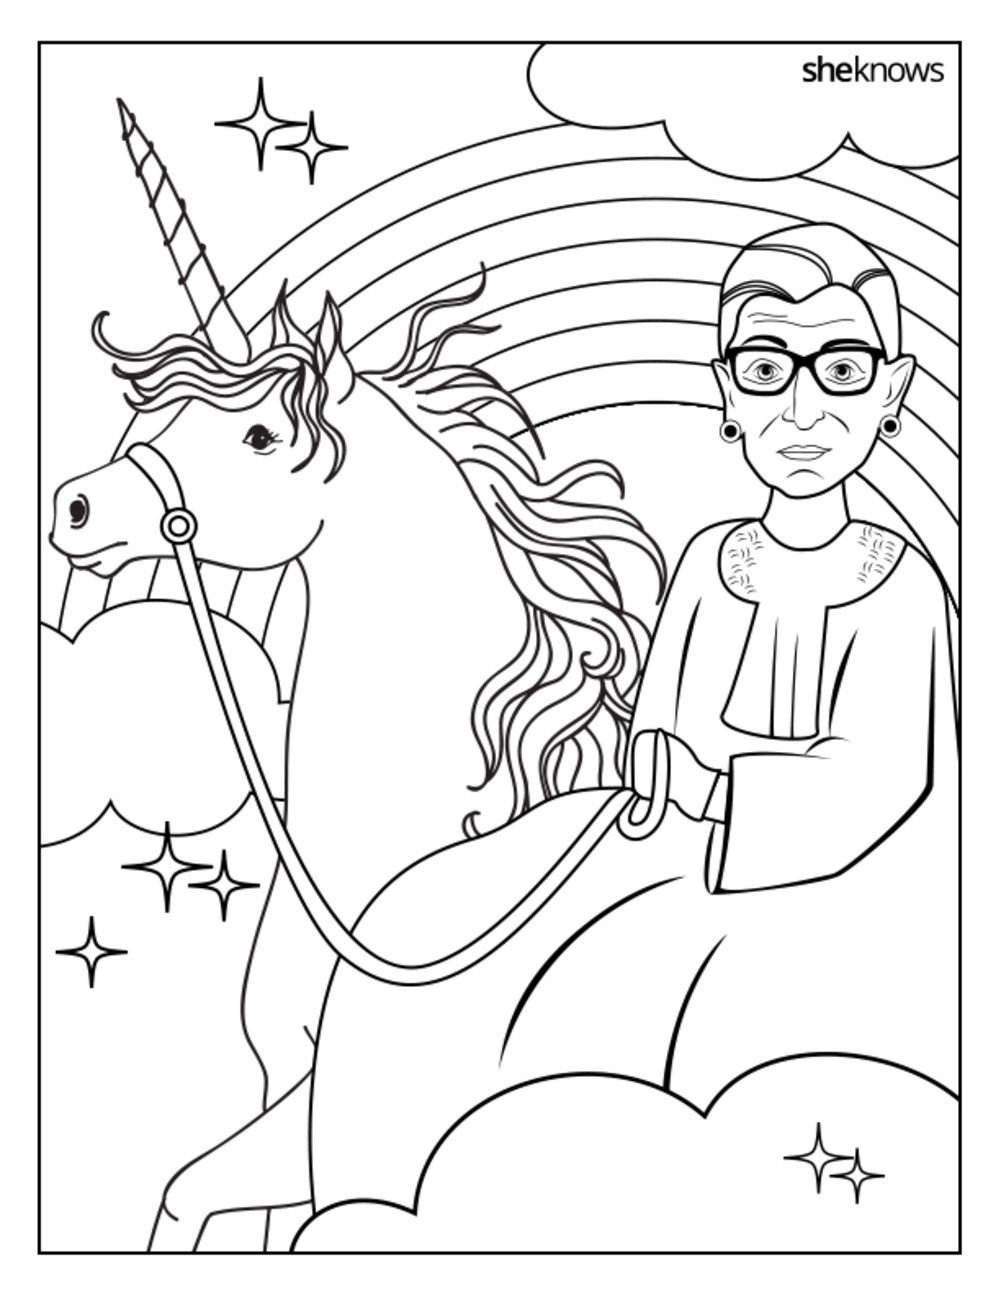 Swimming Coloring Pages At Getcolorings Com Auto